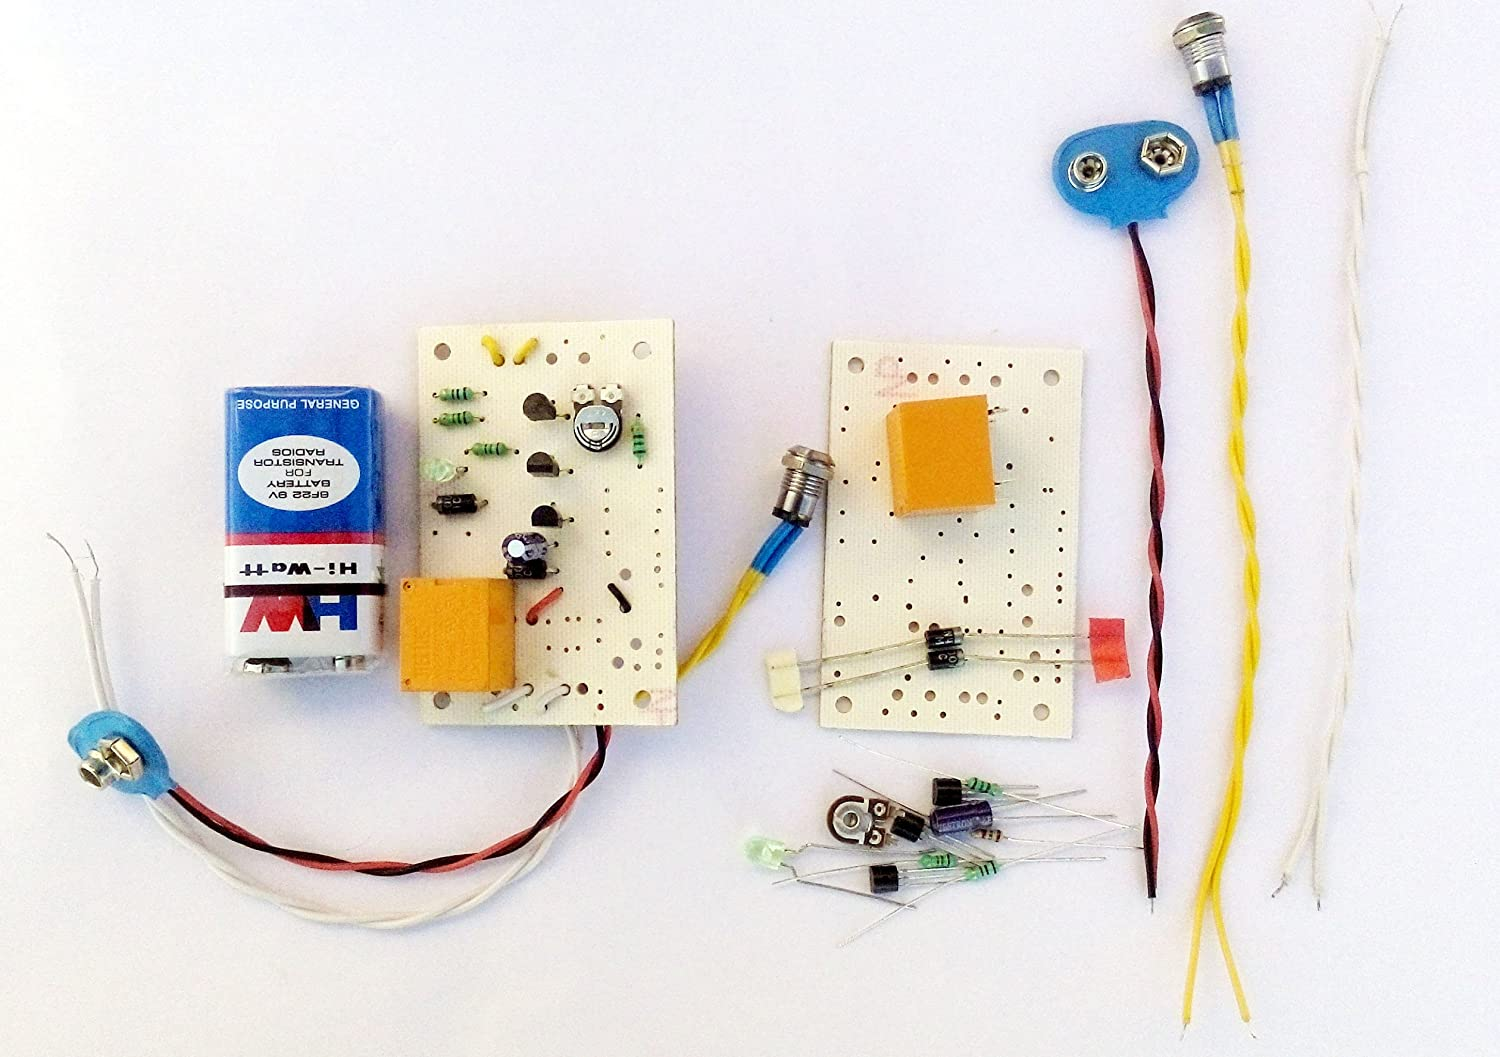 Pke Light Switch Ldr Circuit Project With Complete Assembling Kit And Sensor Also Simple Relay Diagram